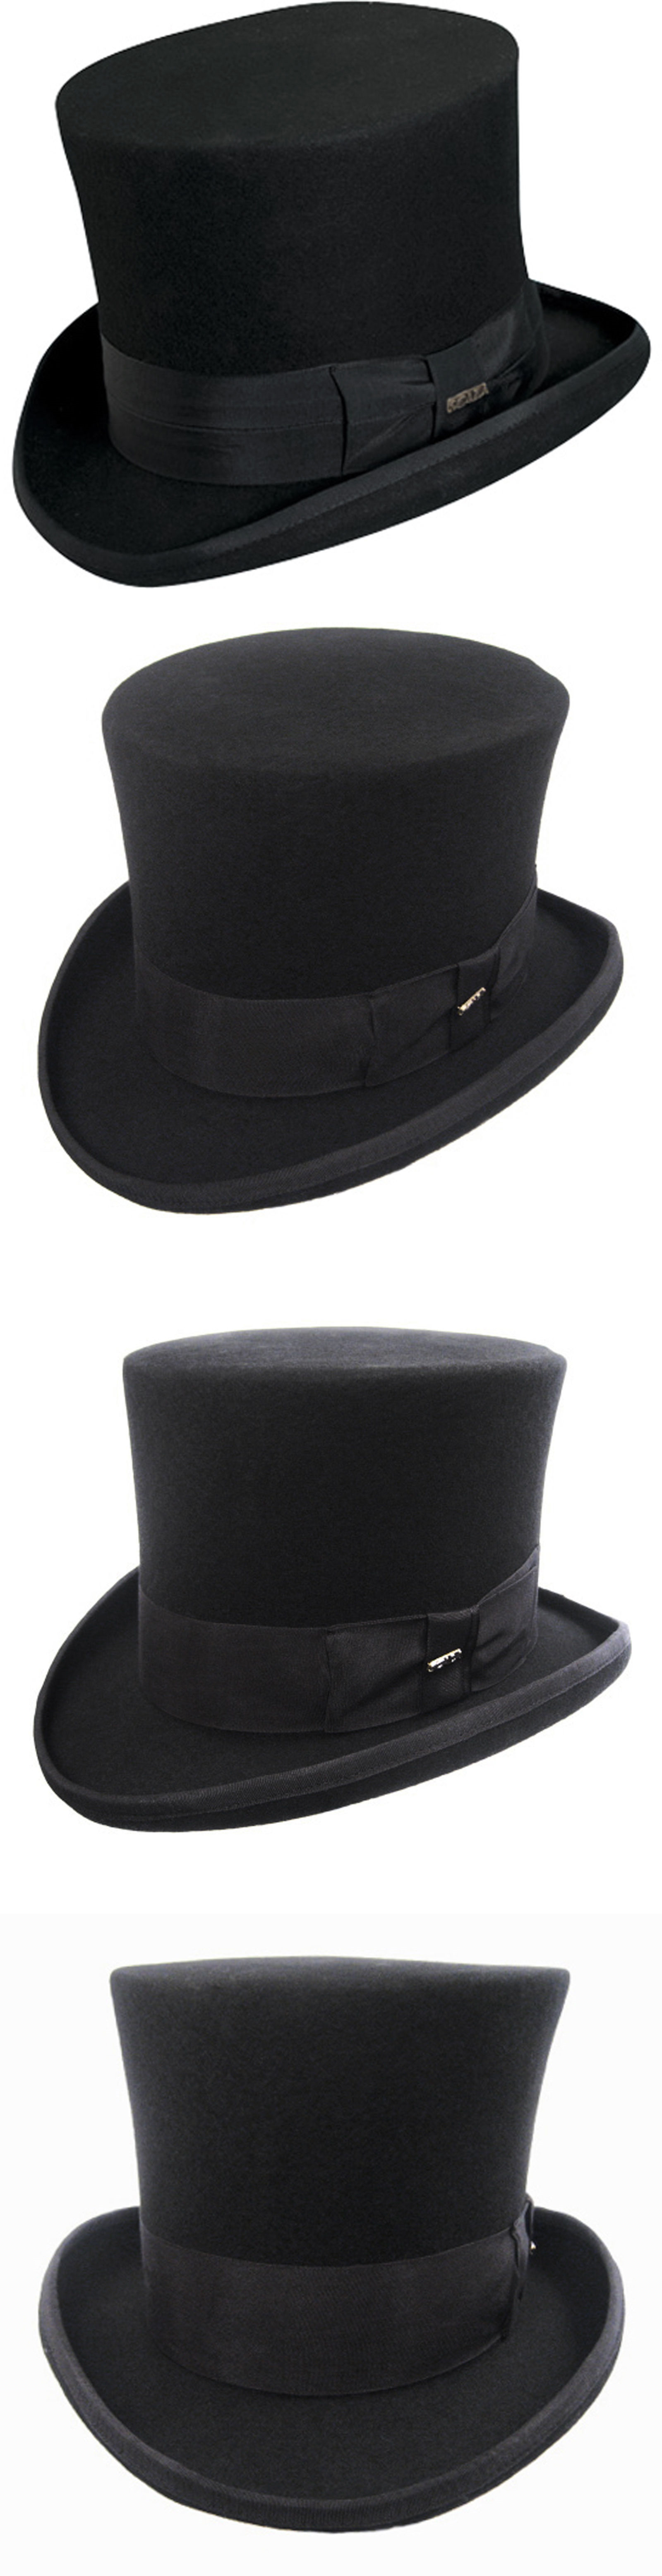 Hats and Headgear 155349  7 Inch Wool Top Hat Steampunk Monopoly Man  Victorian Dickens Mad Hatter Black -  BUY IT NOW ONLY   50.96 on eBay! da309575ff78